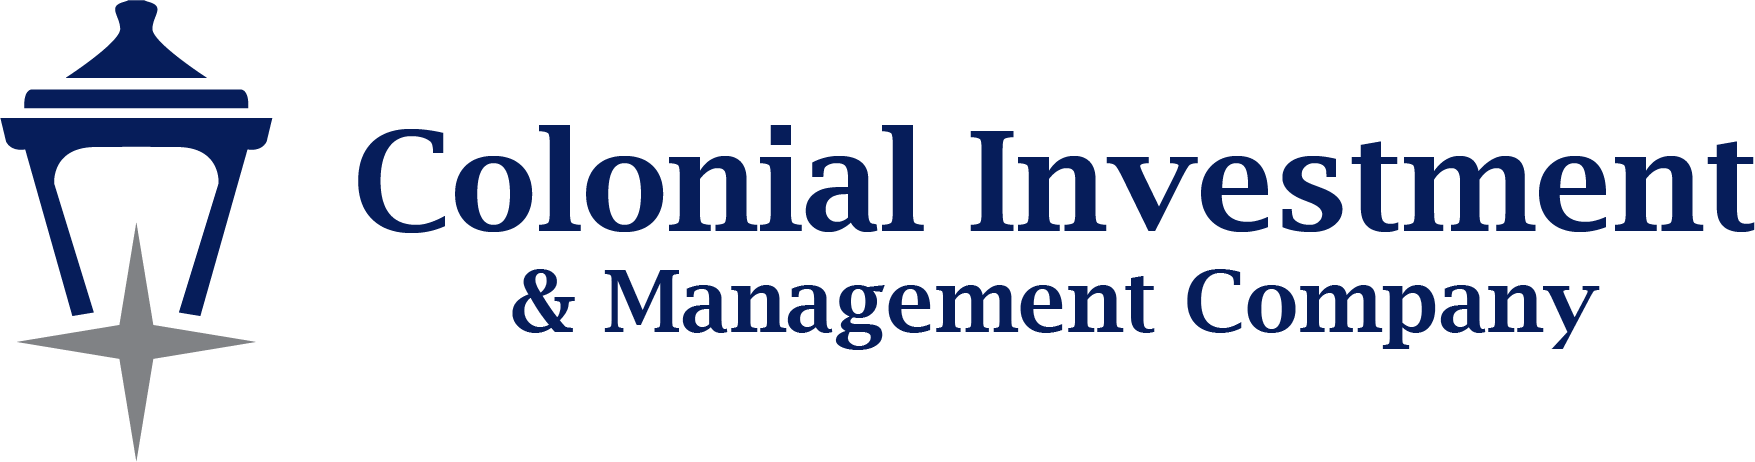 Colonial Investment & Management Company Logo